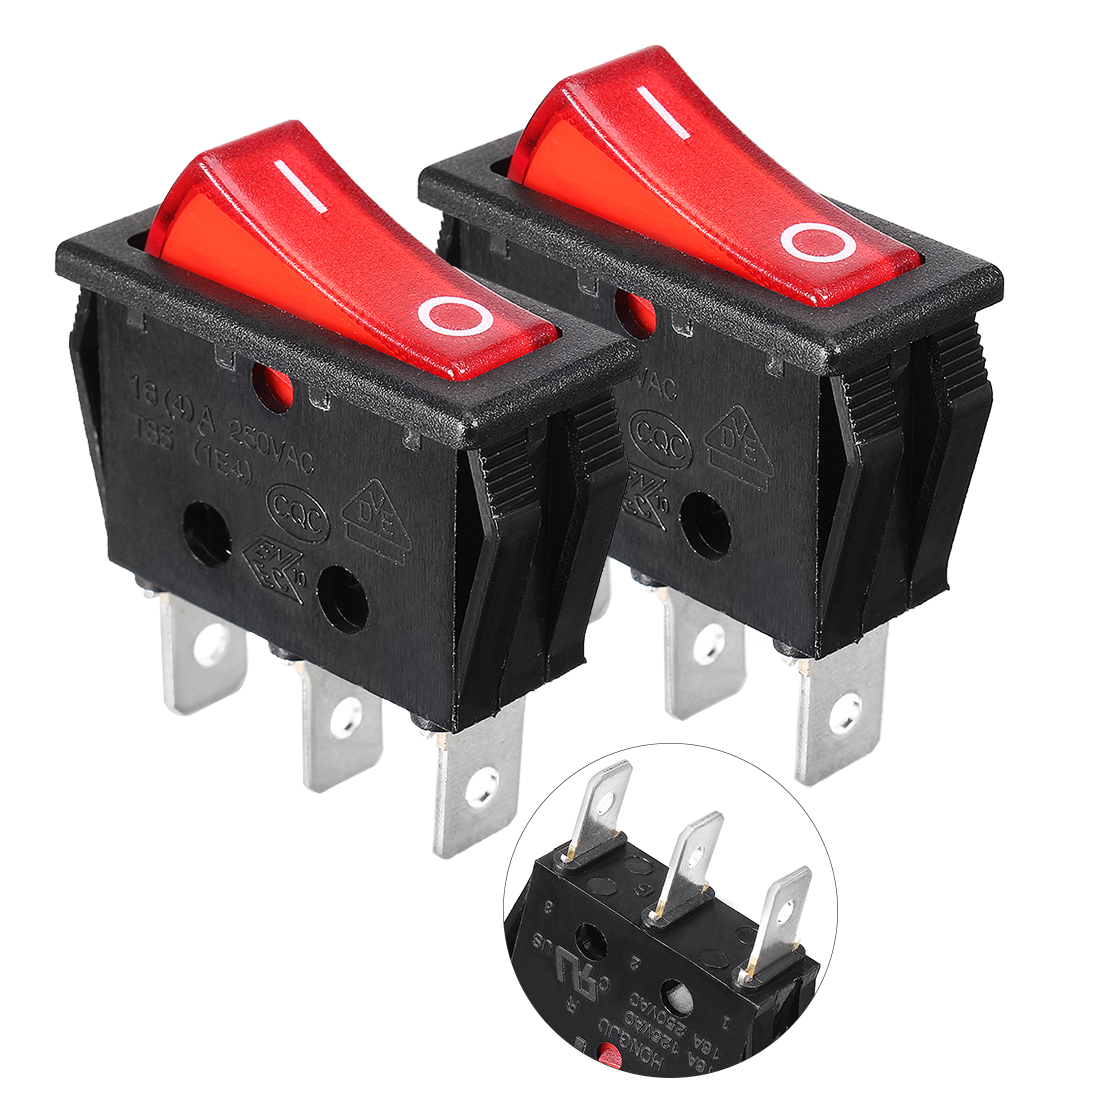 2 x Red Light Illuminated ON-OFF SPST Snap in Rocker Switch 16A/250V